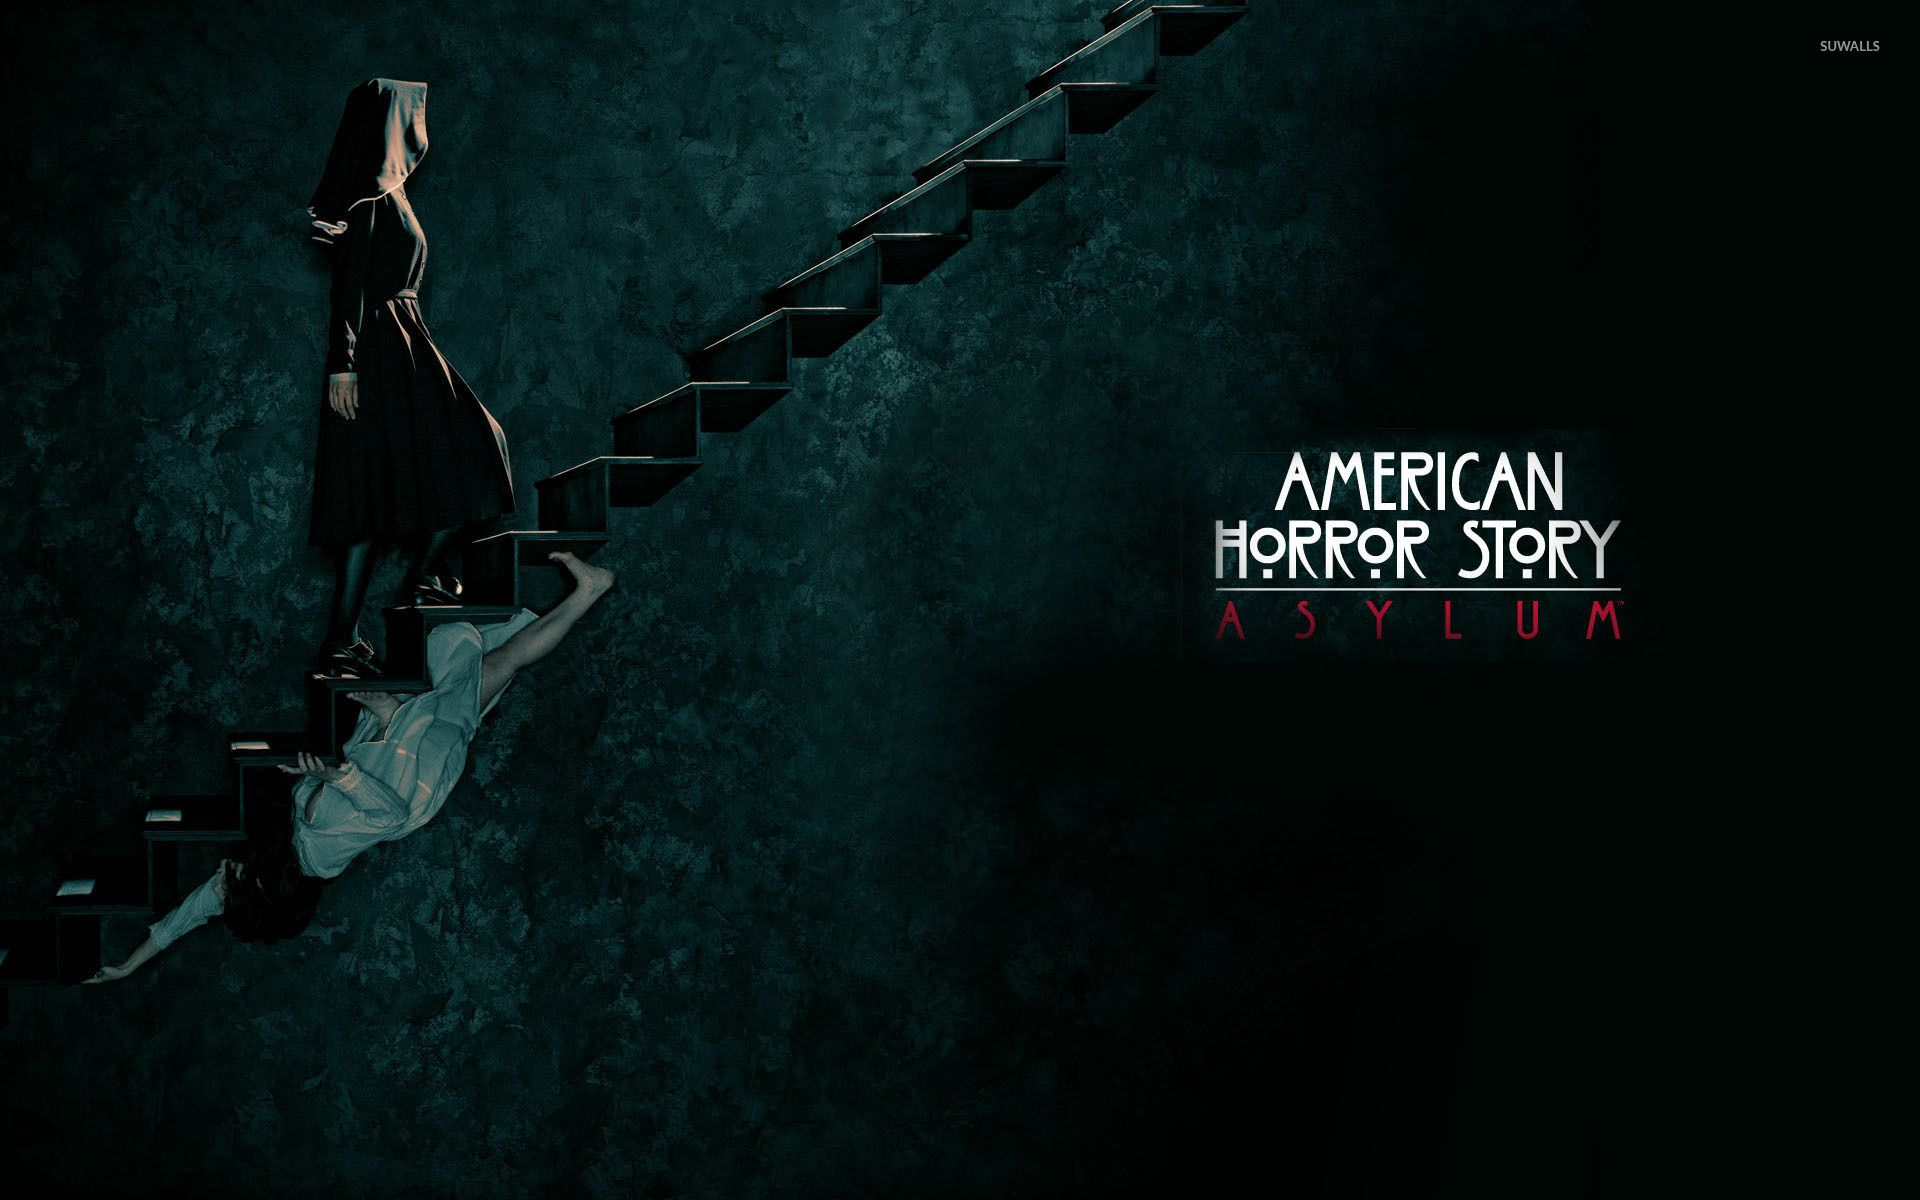 american horror story - asylum [2] wallpaper - tv show wallpapers